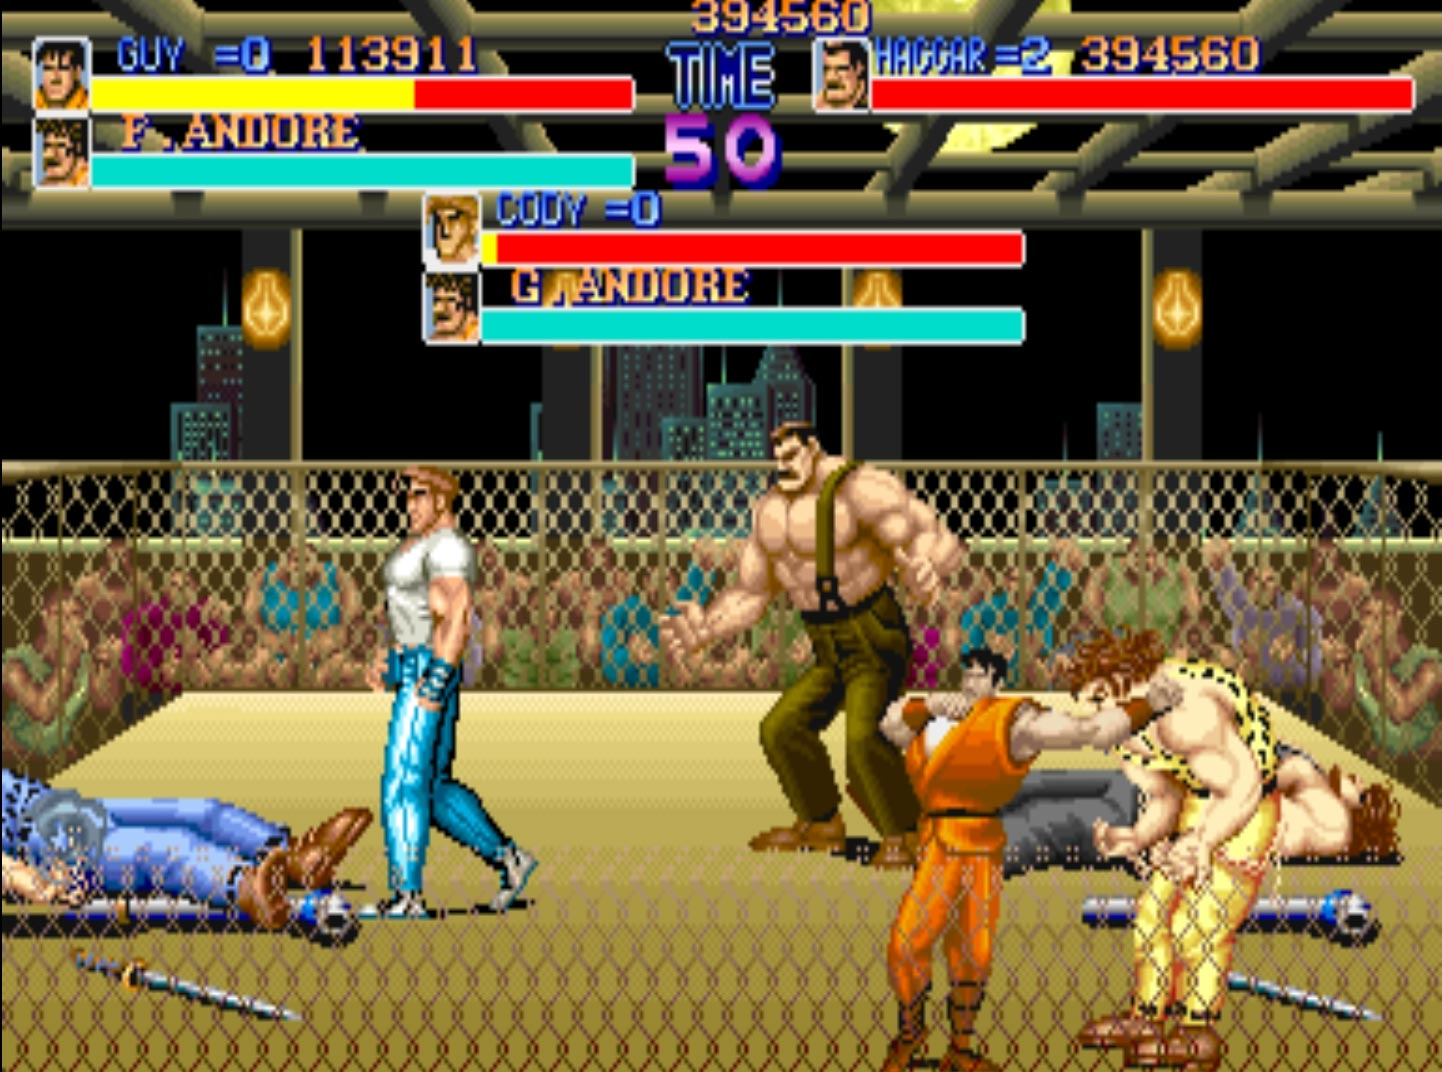 Final Fight X 3 2 out of 5 image gallery